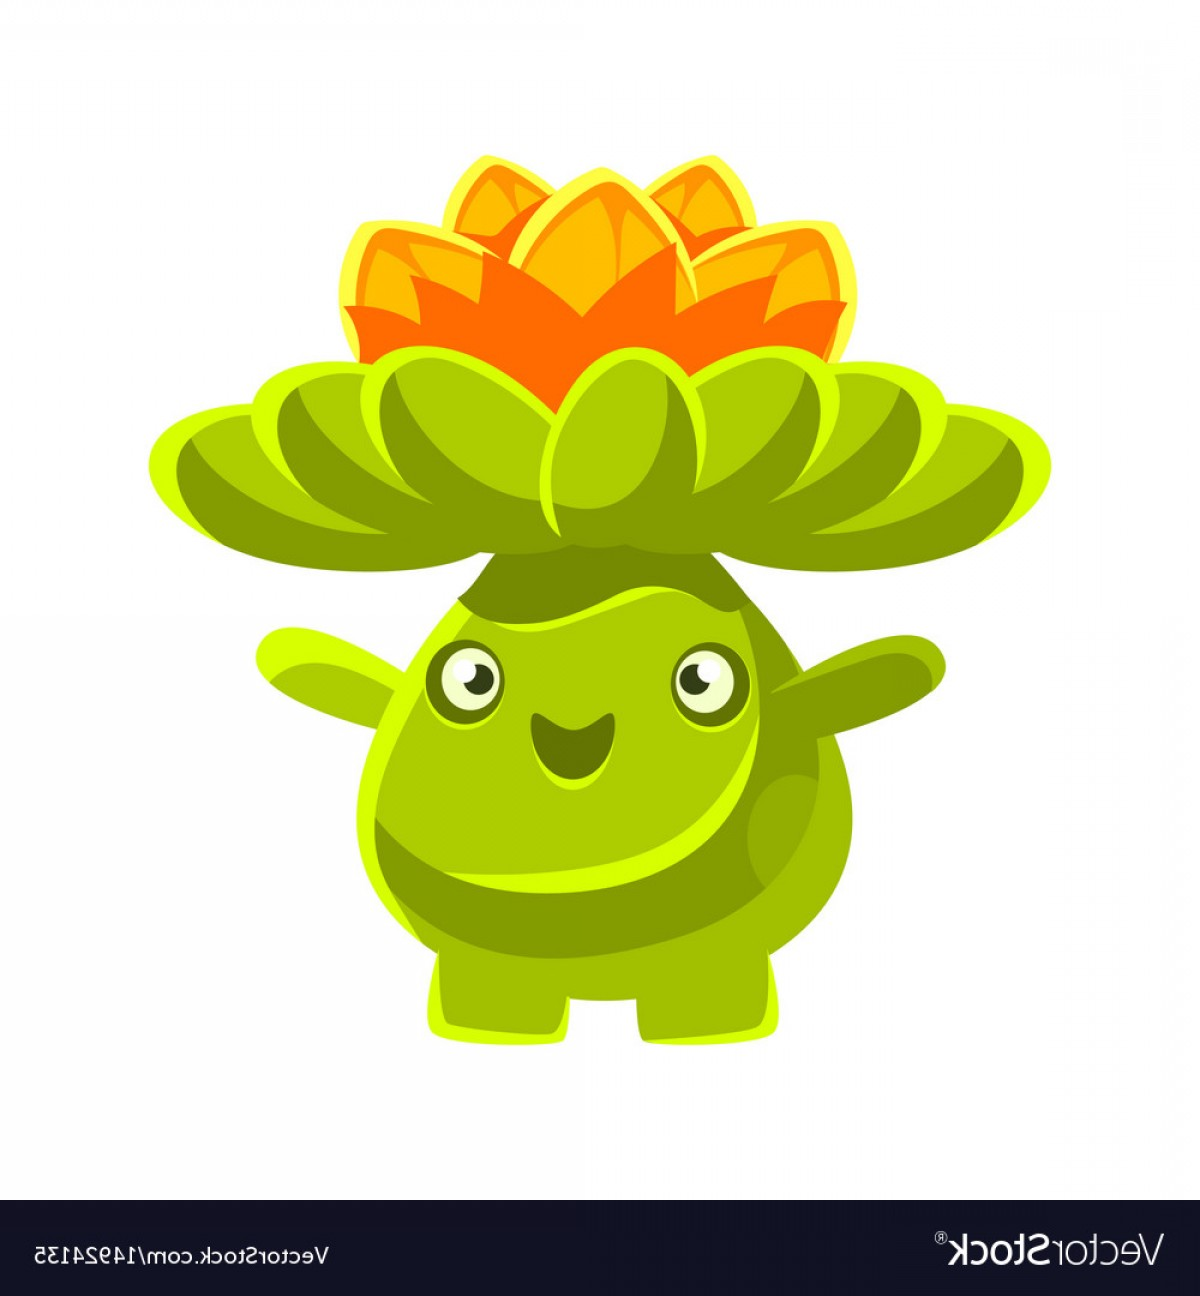 Cactus And Flower Vector: Cute Smiling Cactus Emoji With Flowers On His Head Vector